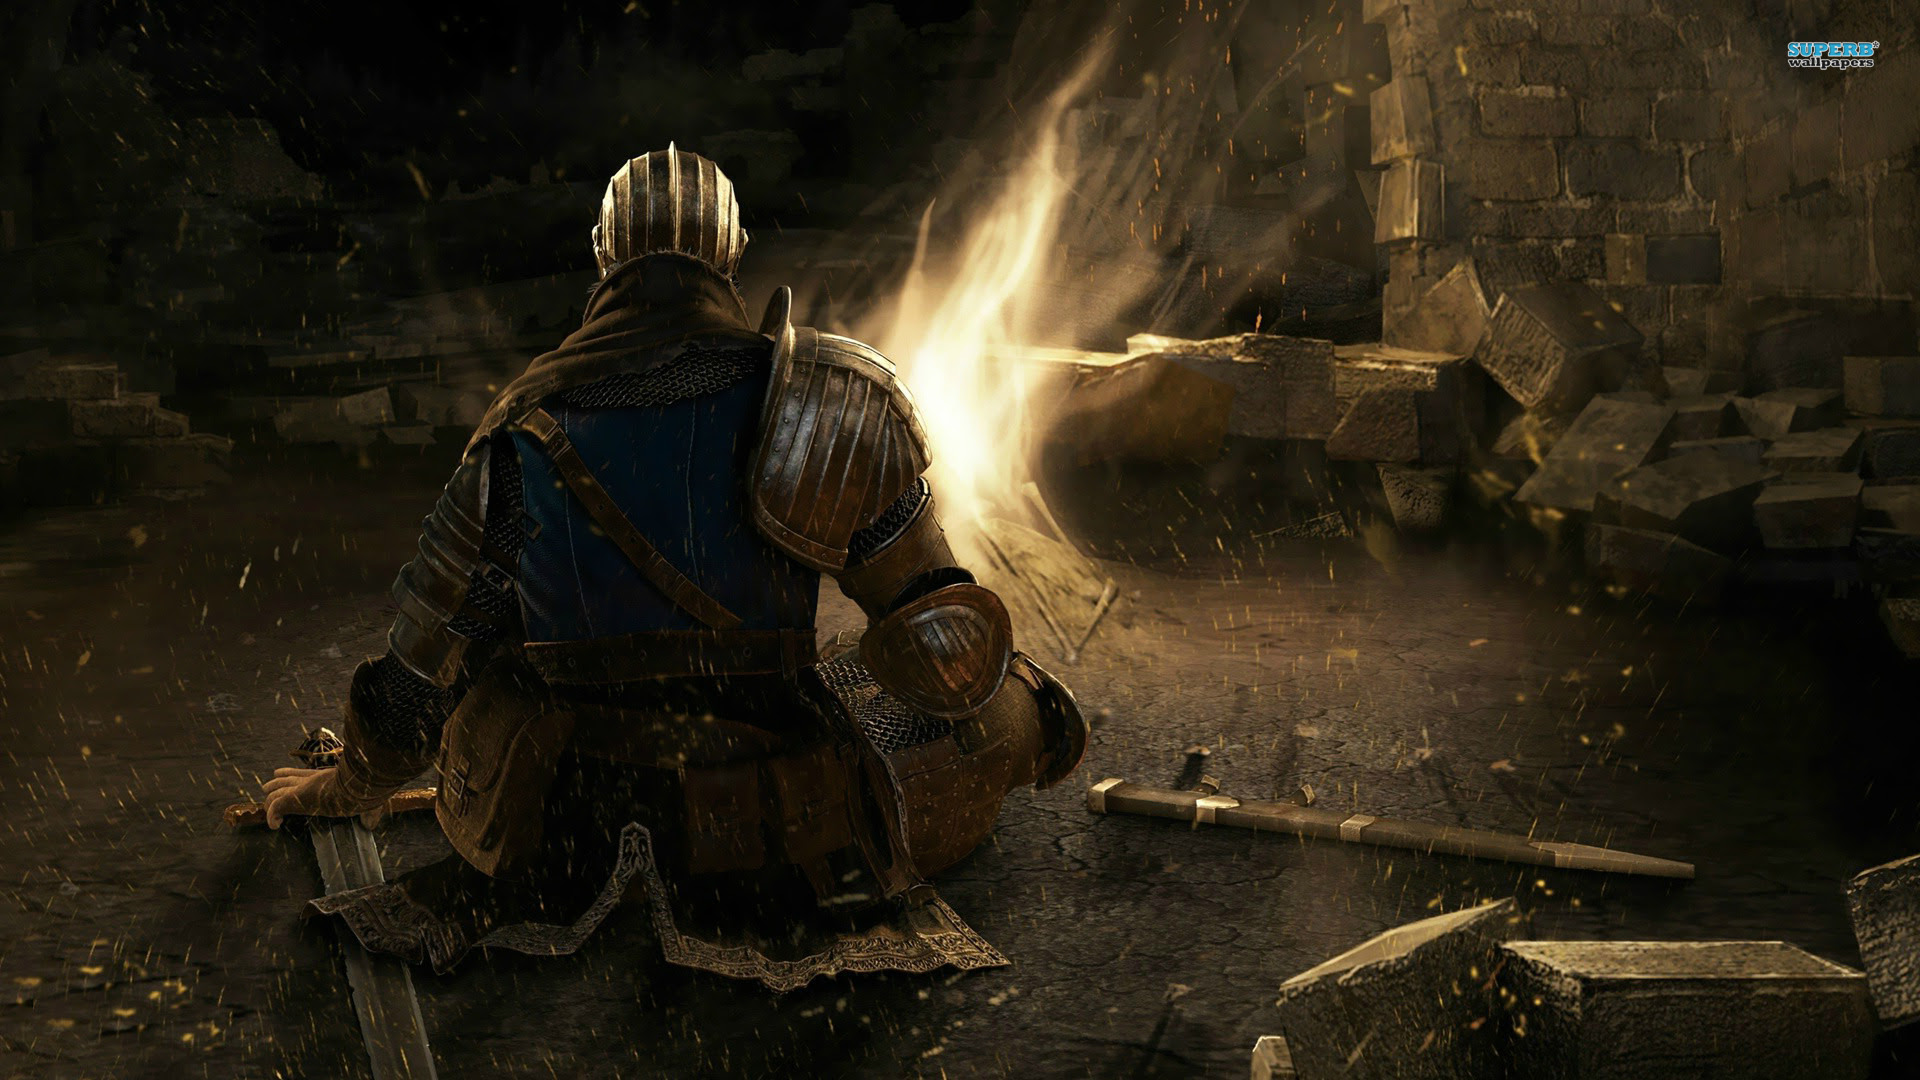 Dark Souls Wallpaper 1920x1080 83486